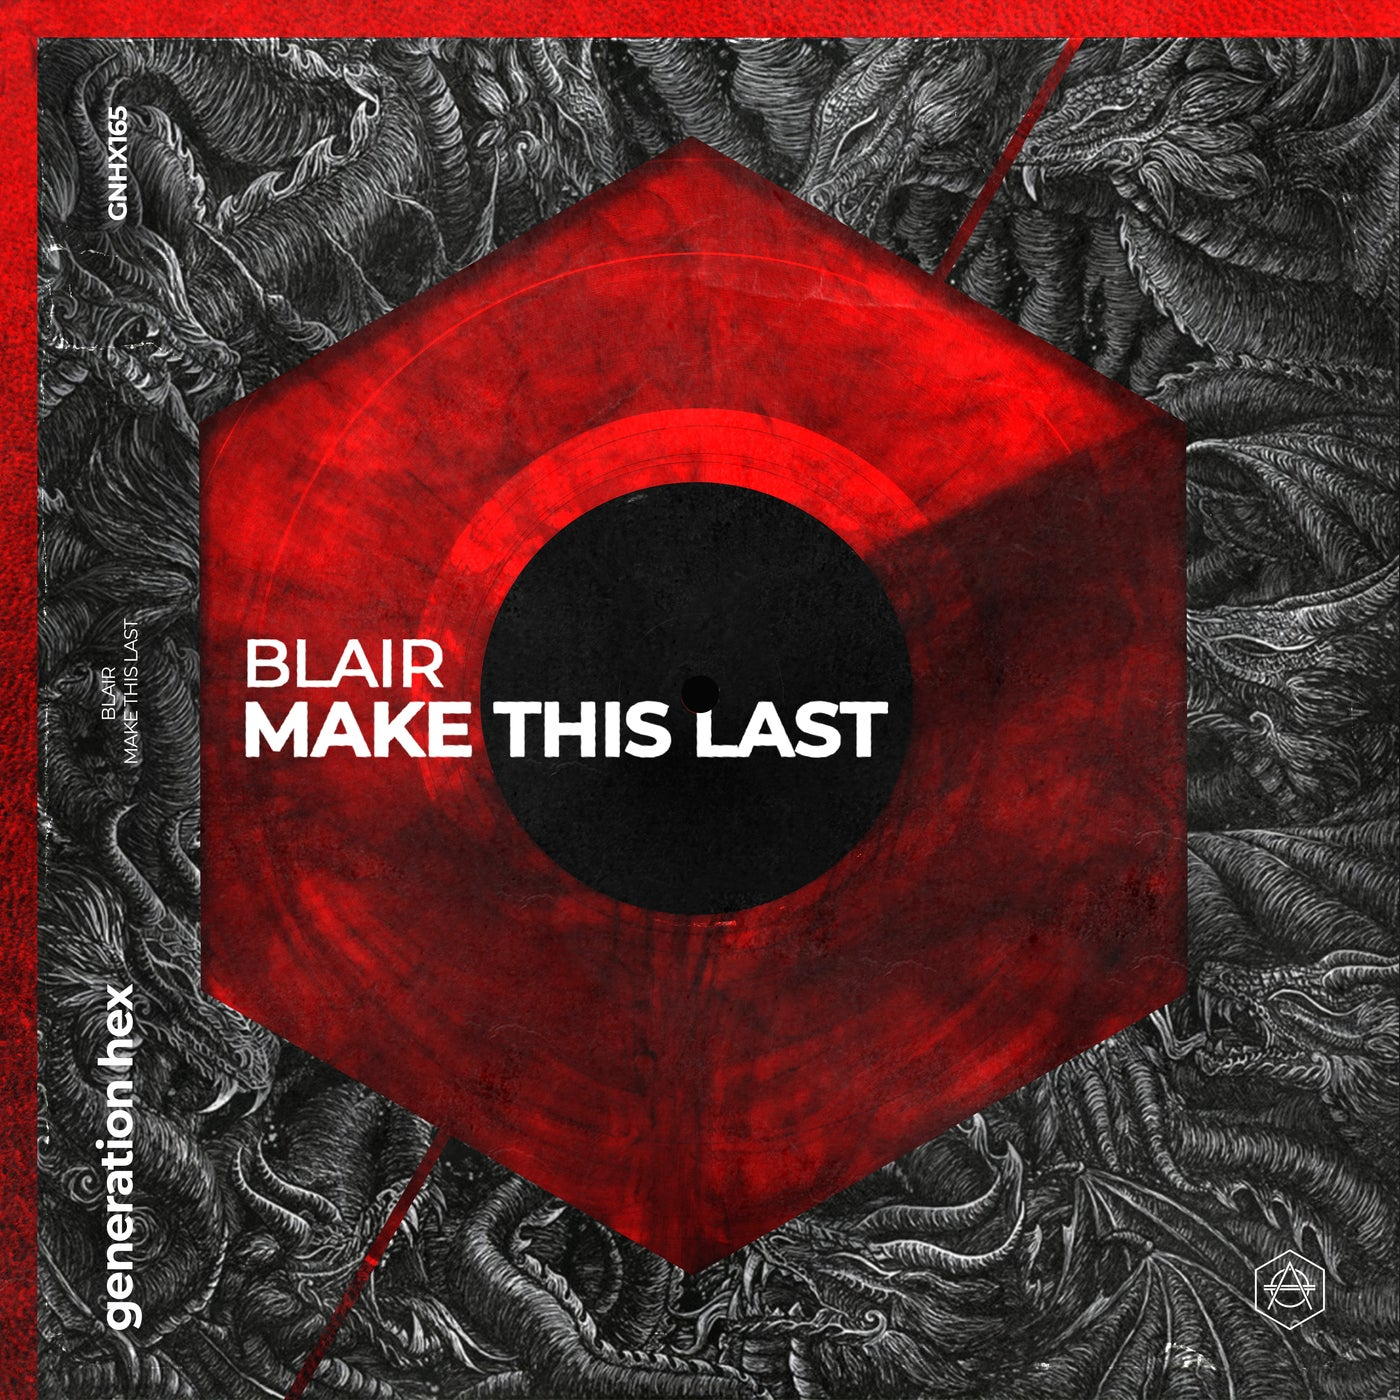 Make This Last (Extended Mix)